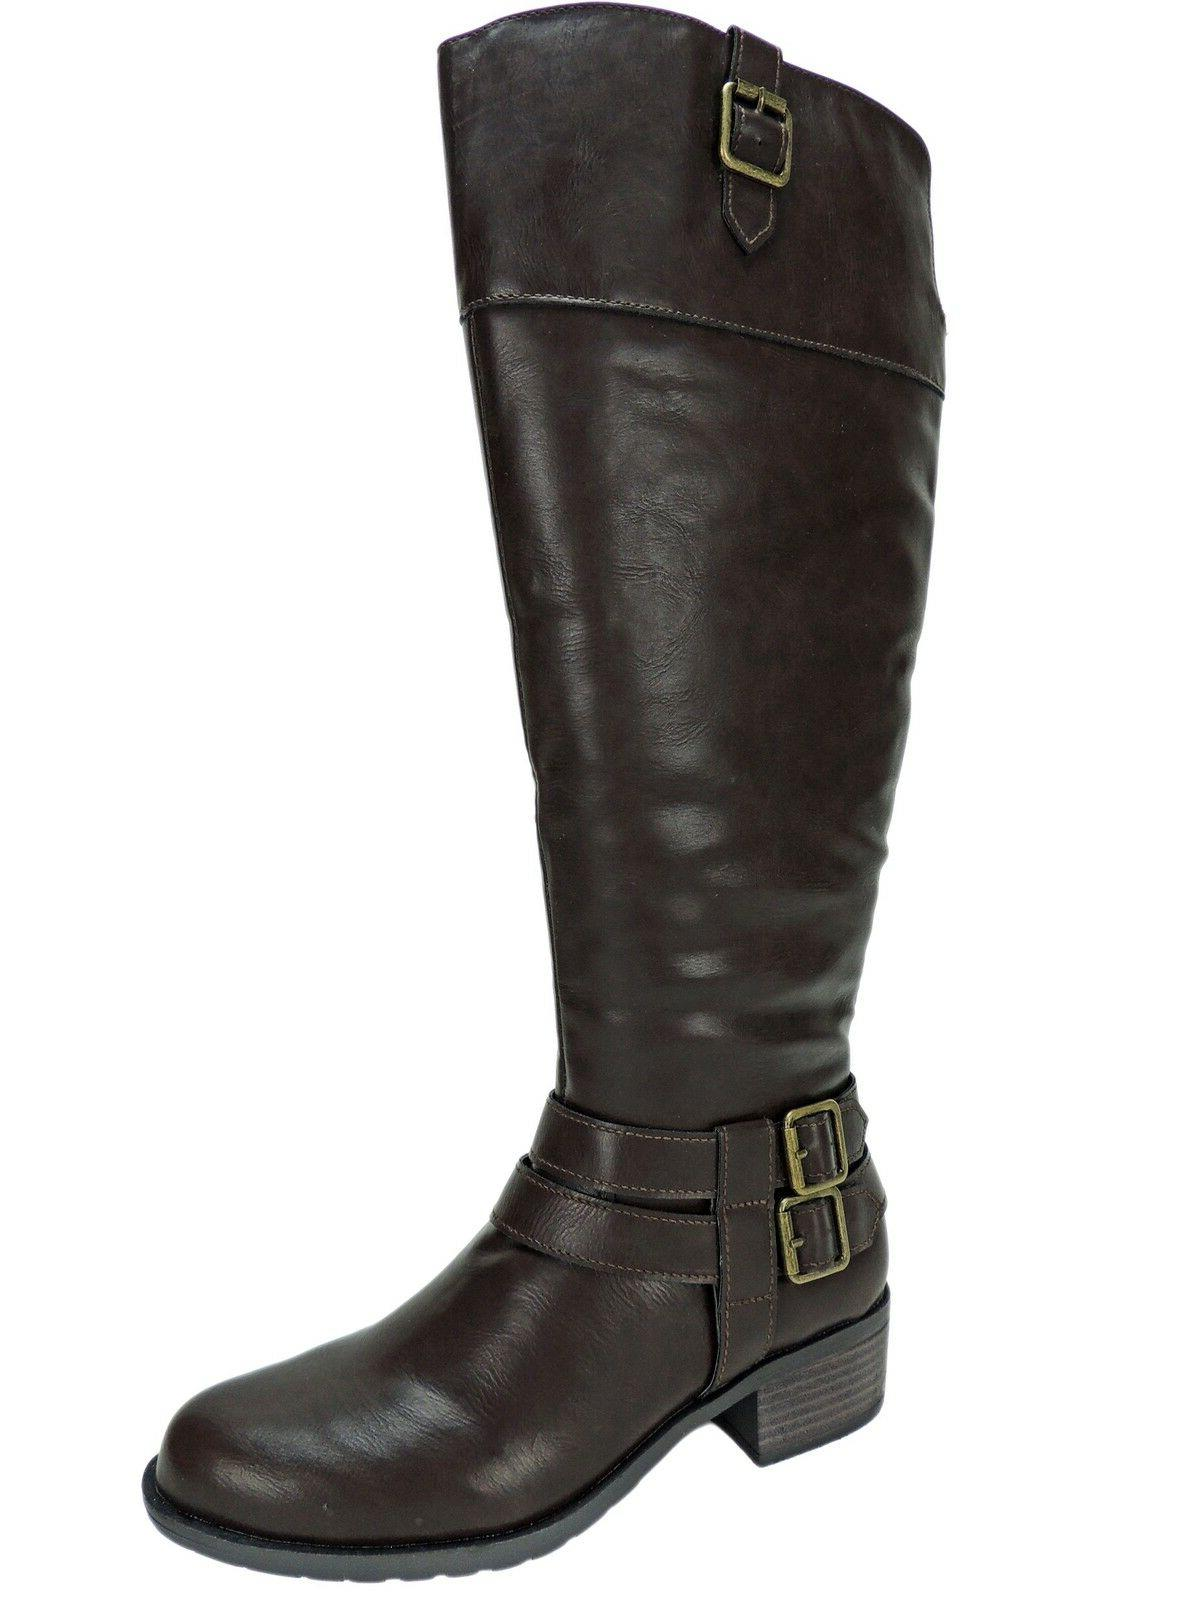 Rampage Women's Ingred Wide Calf Riding Boots Brown Size 6.5